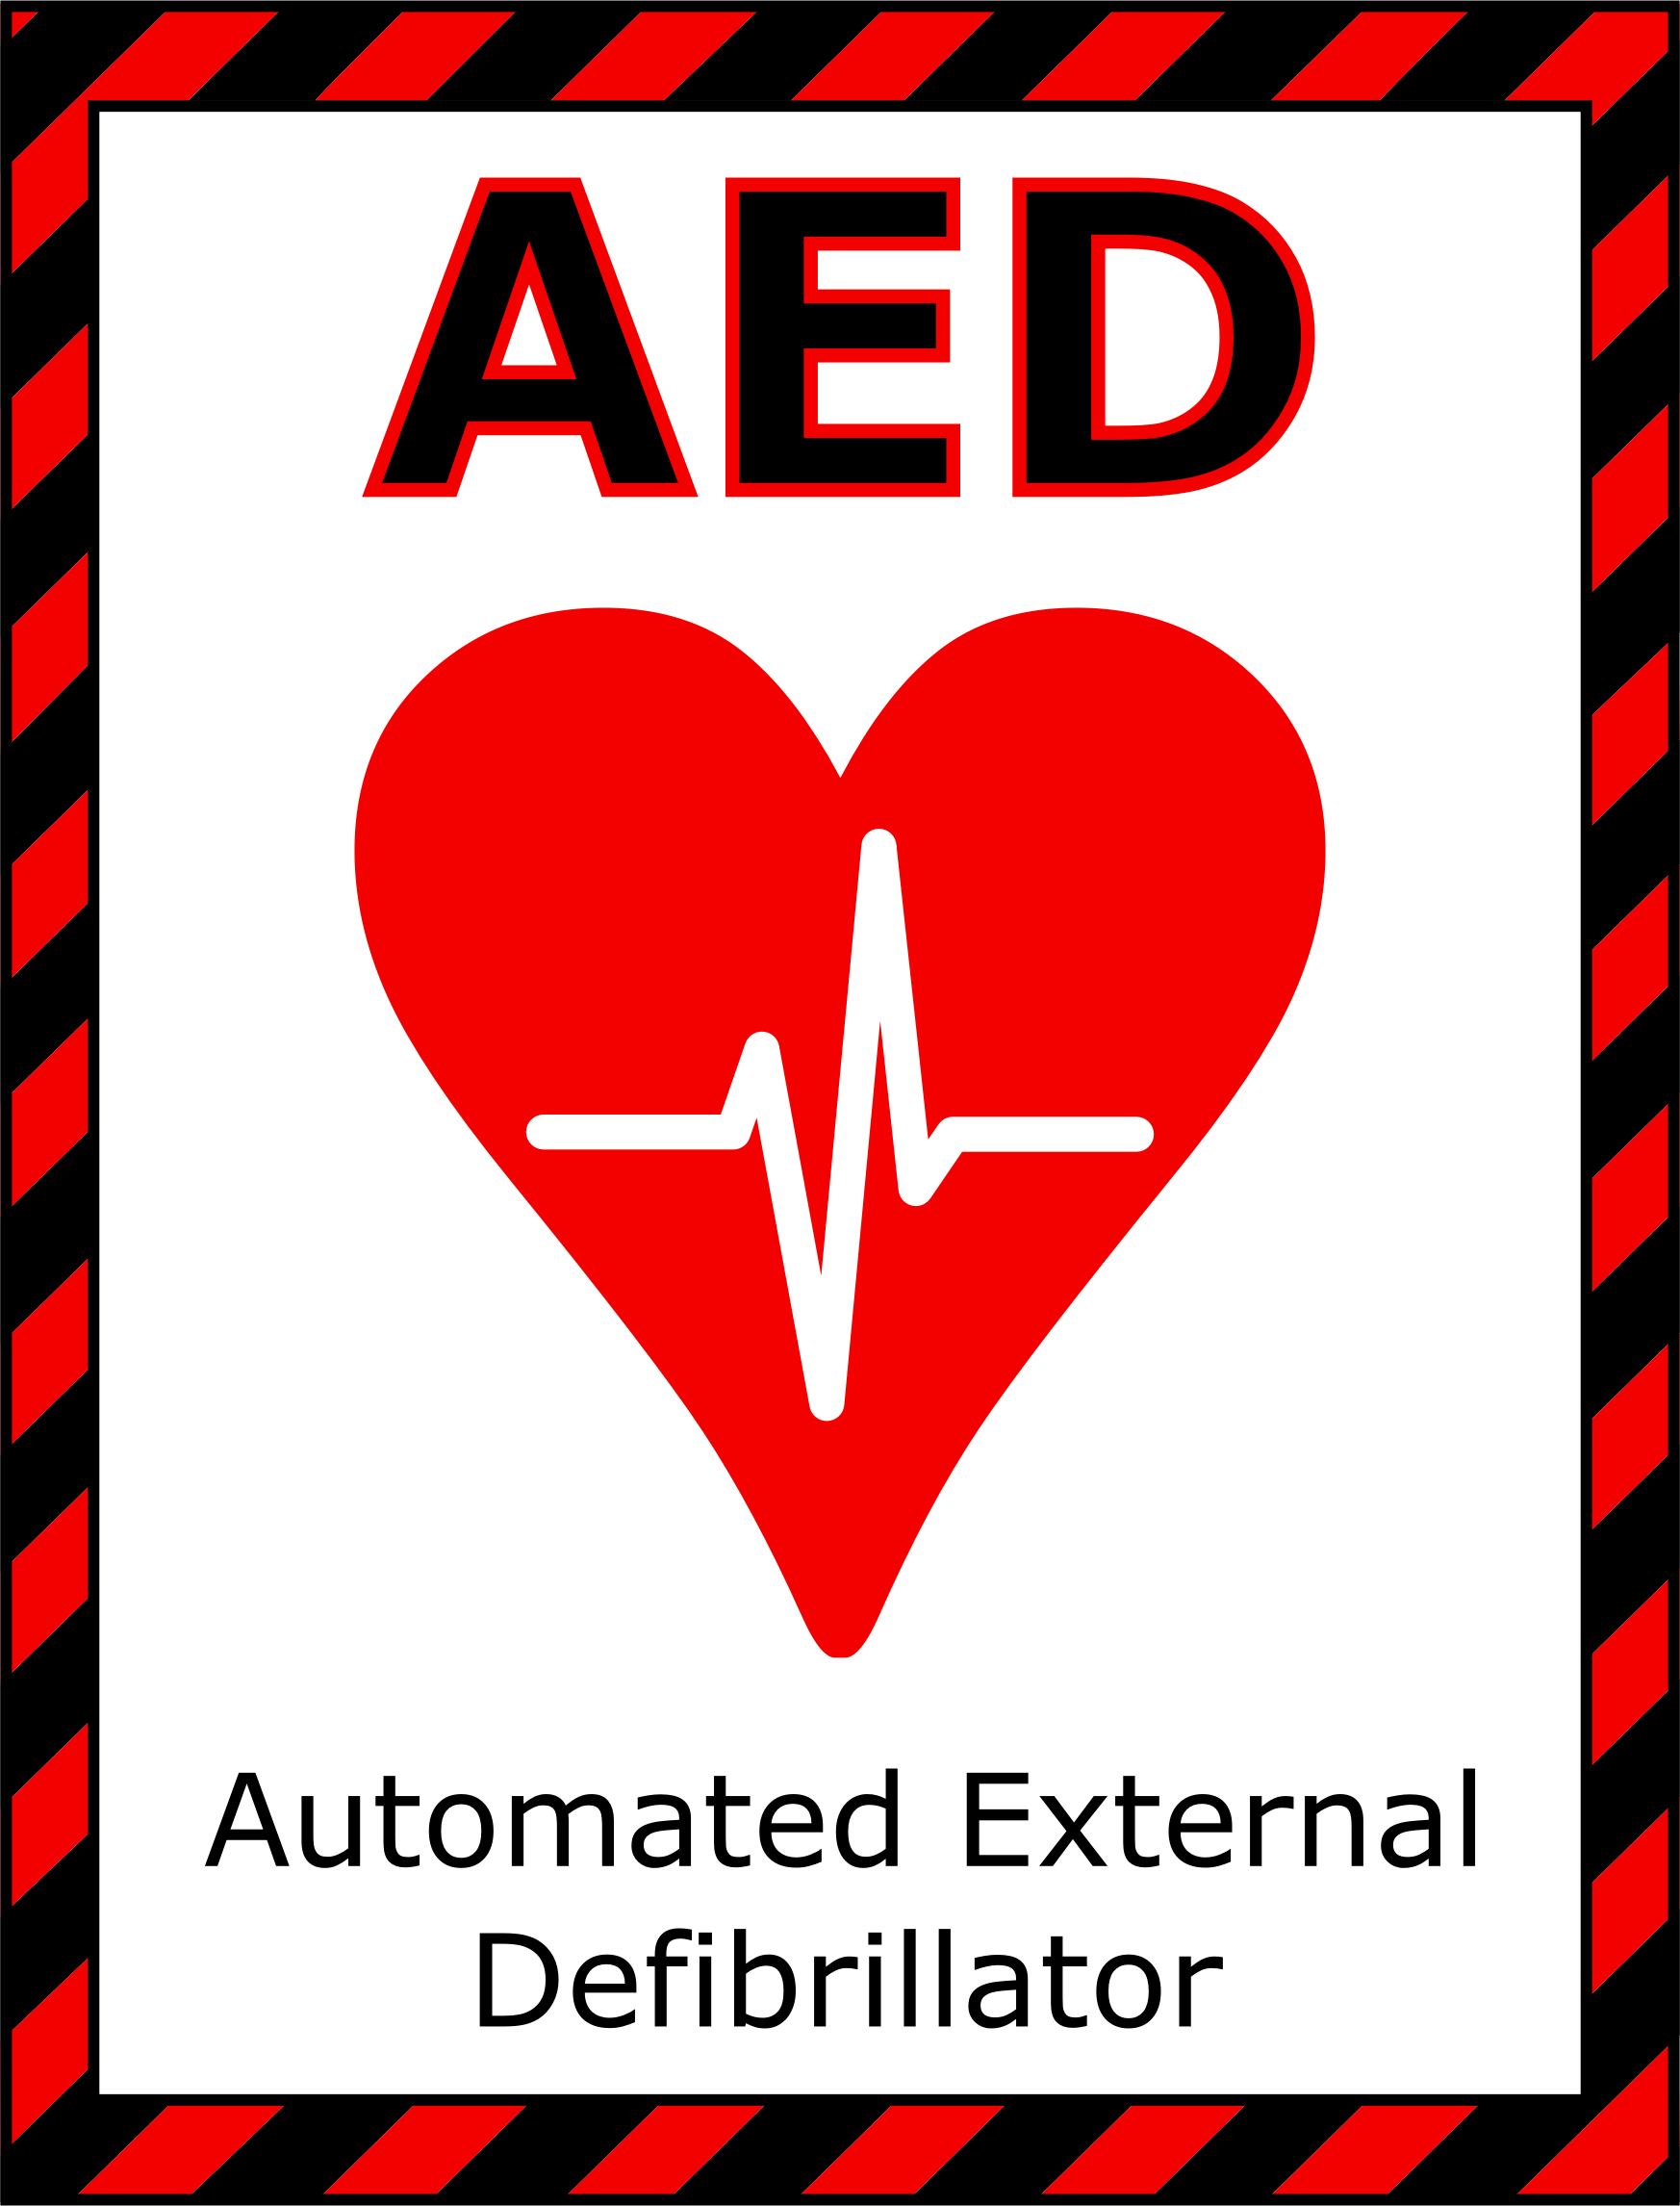 BIG IMAGE (PNG) - Aed Logo PNG